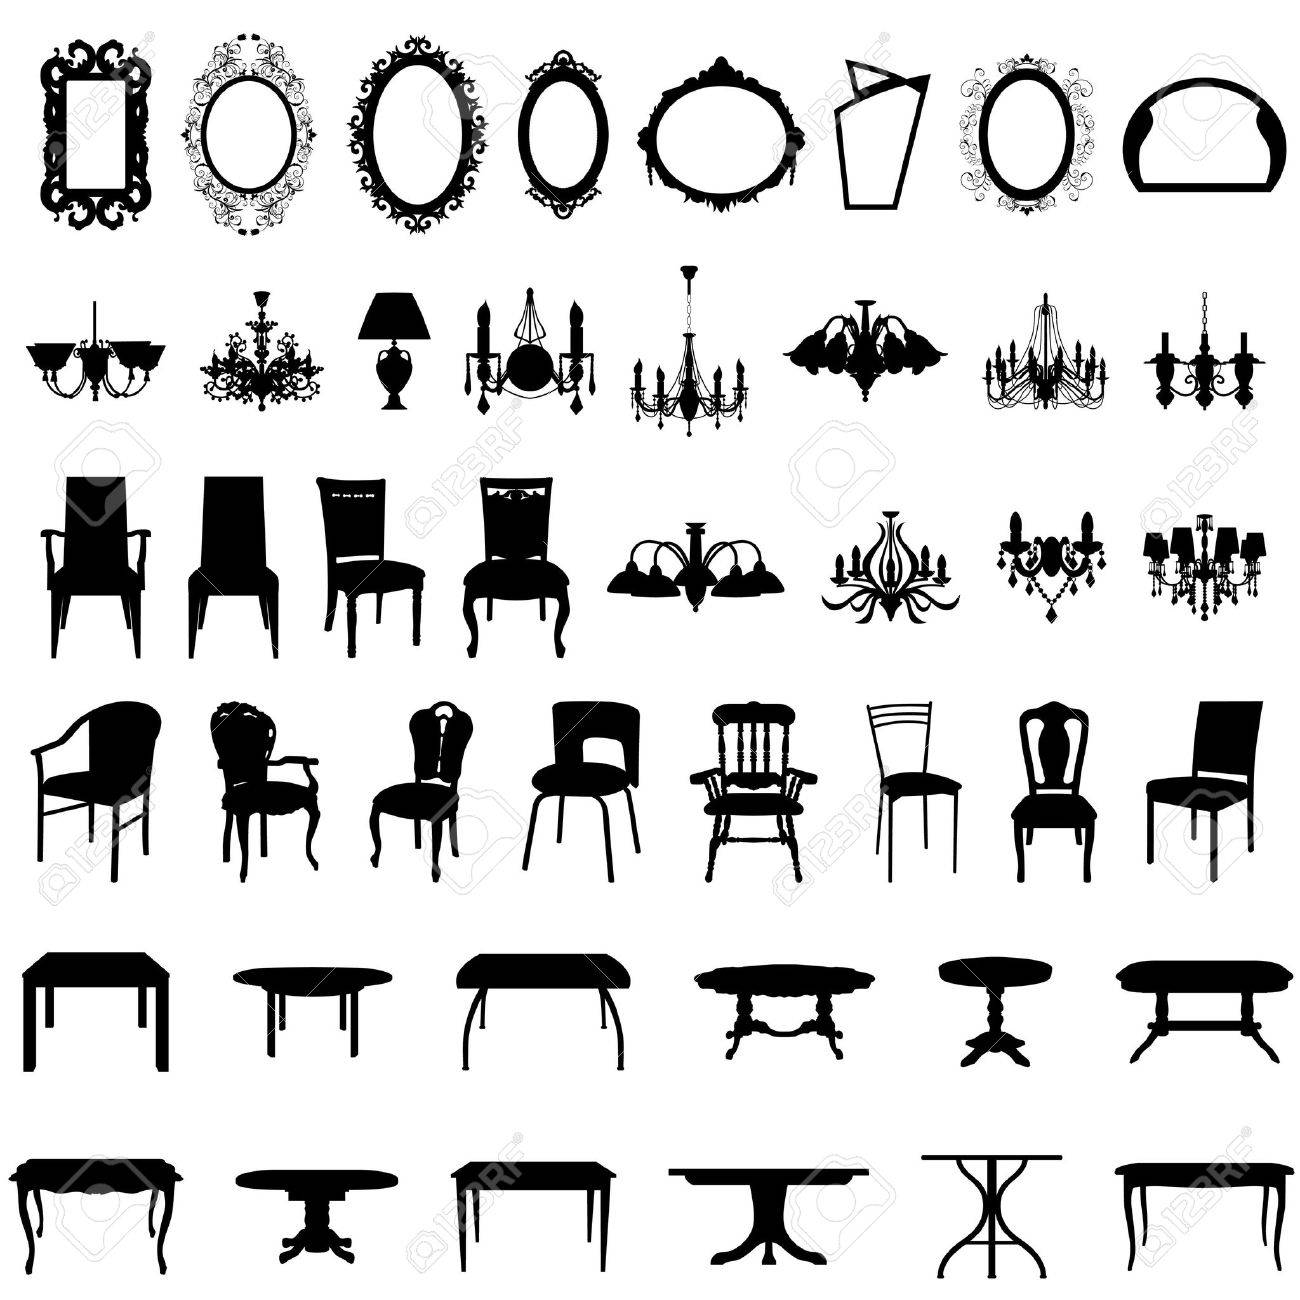 Set of different furniture silhouettes. illustration. Stock Vector - 7117128